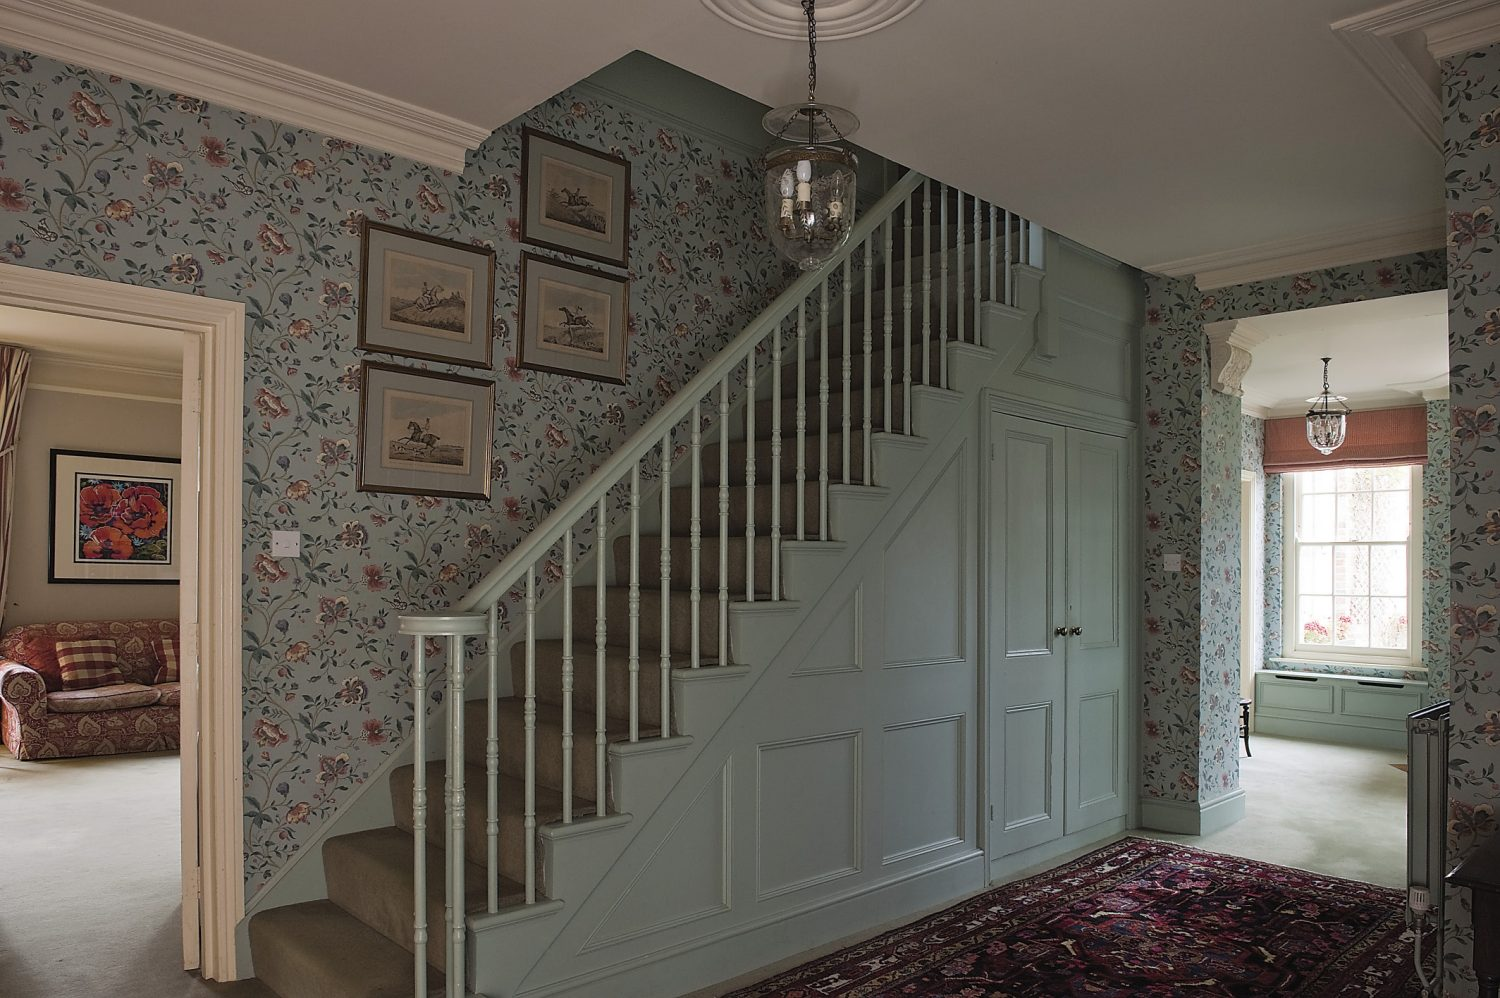 A broad staircase has its original Regency banisters. Sophie has painted them in Farrow & Ball's 'blue-green' to match the rest of the wooden panelling